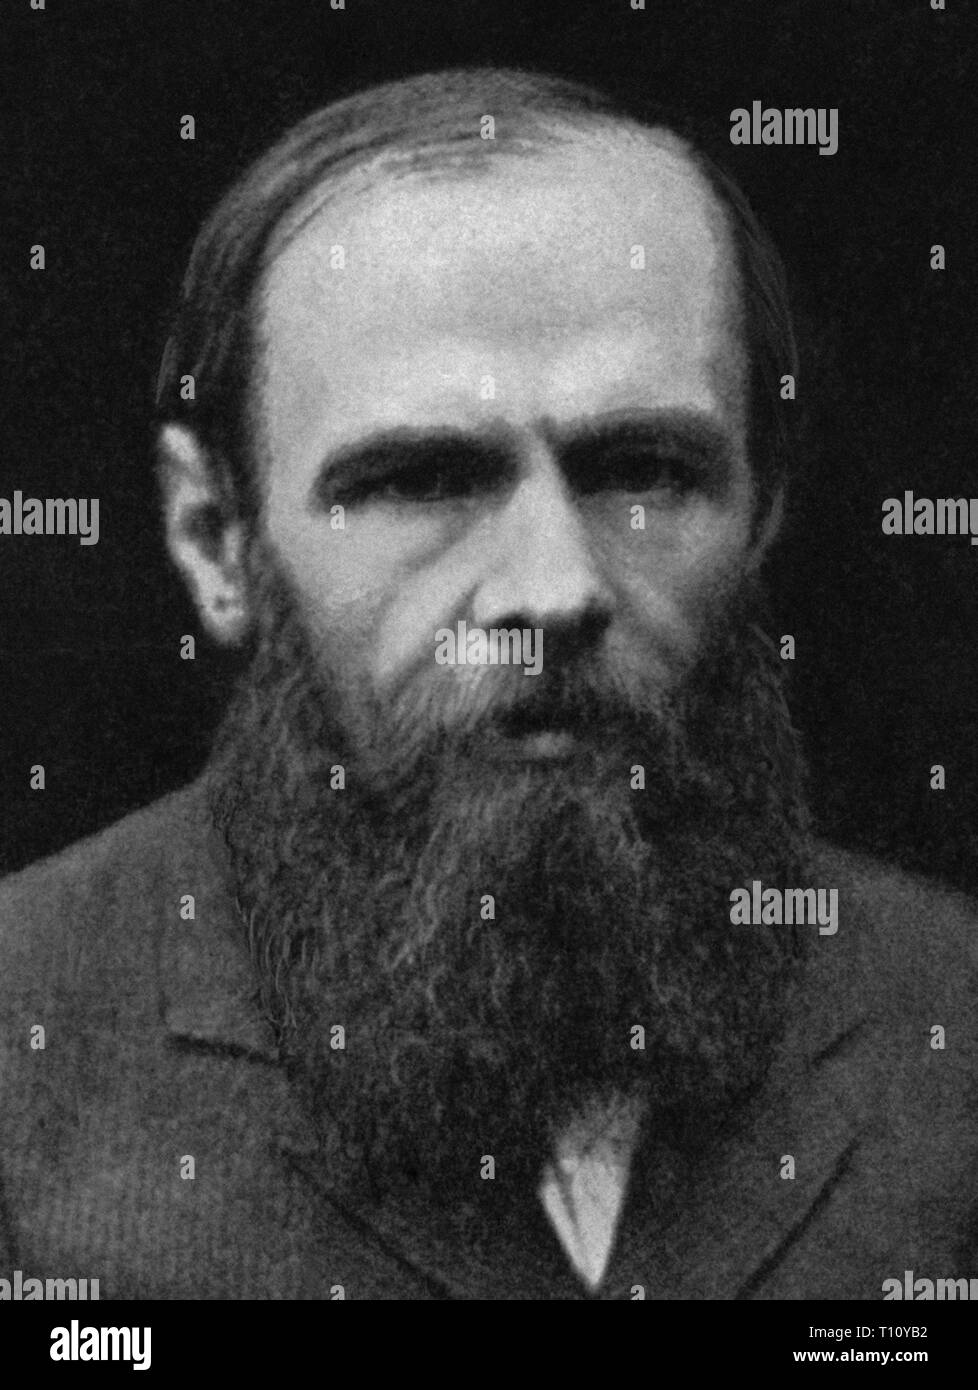 Fyodor Mikhailovich Dostoevsky, sometimes transliterated Dostoyevsky, was a Russian novelist, short story writer, essayist, journalist and philosopher. Scanned from image material in the archives of Press Portrait Service - (formerly Press Portrait Bureau). - Stock Image